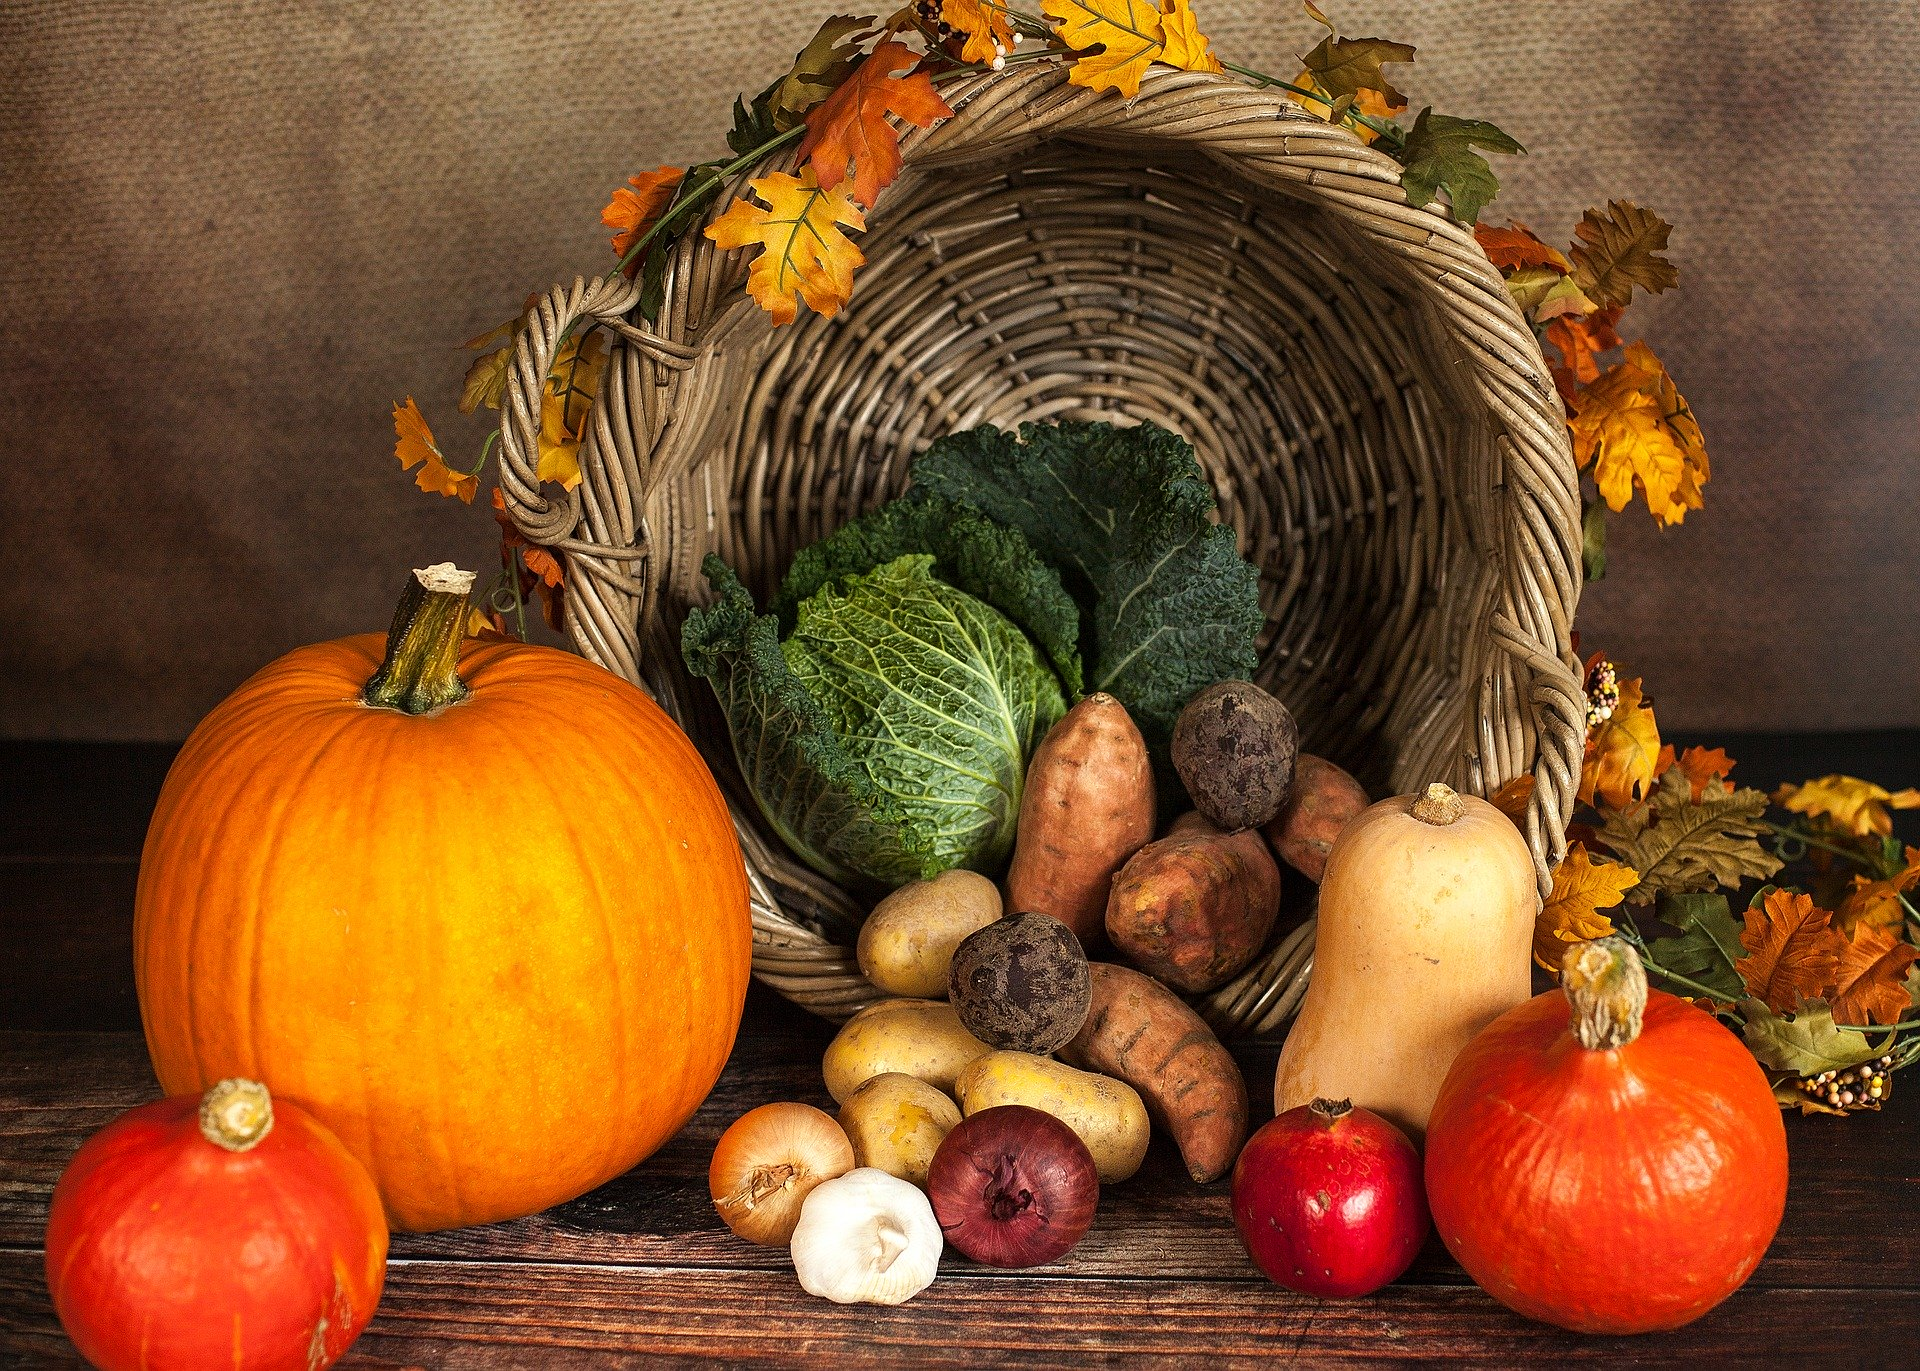 a picture of gourds, vegetables, and a cornucopia